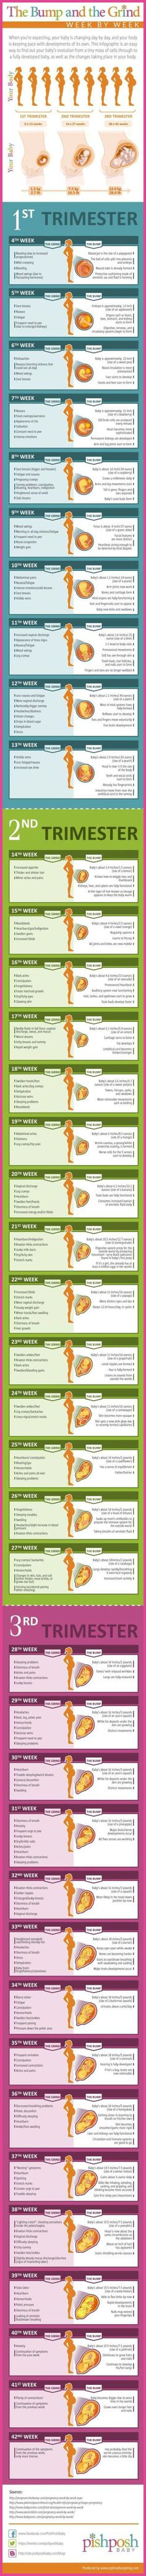 [Pregnancy First] The What, When, Where and How of Employment During Pregnancy -- You can get additional details at the image link. #love #firstpregnancytips #pregnancyfirstmorningsickness